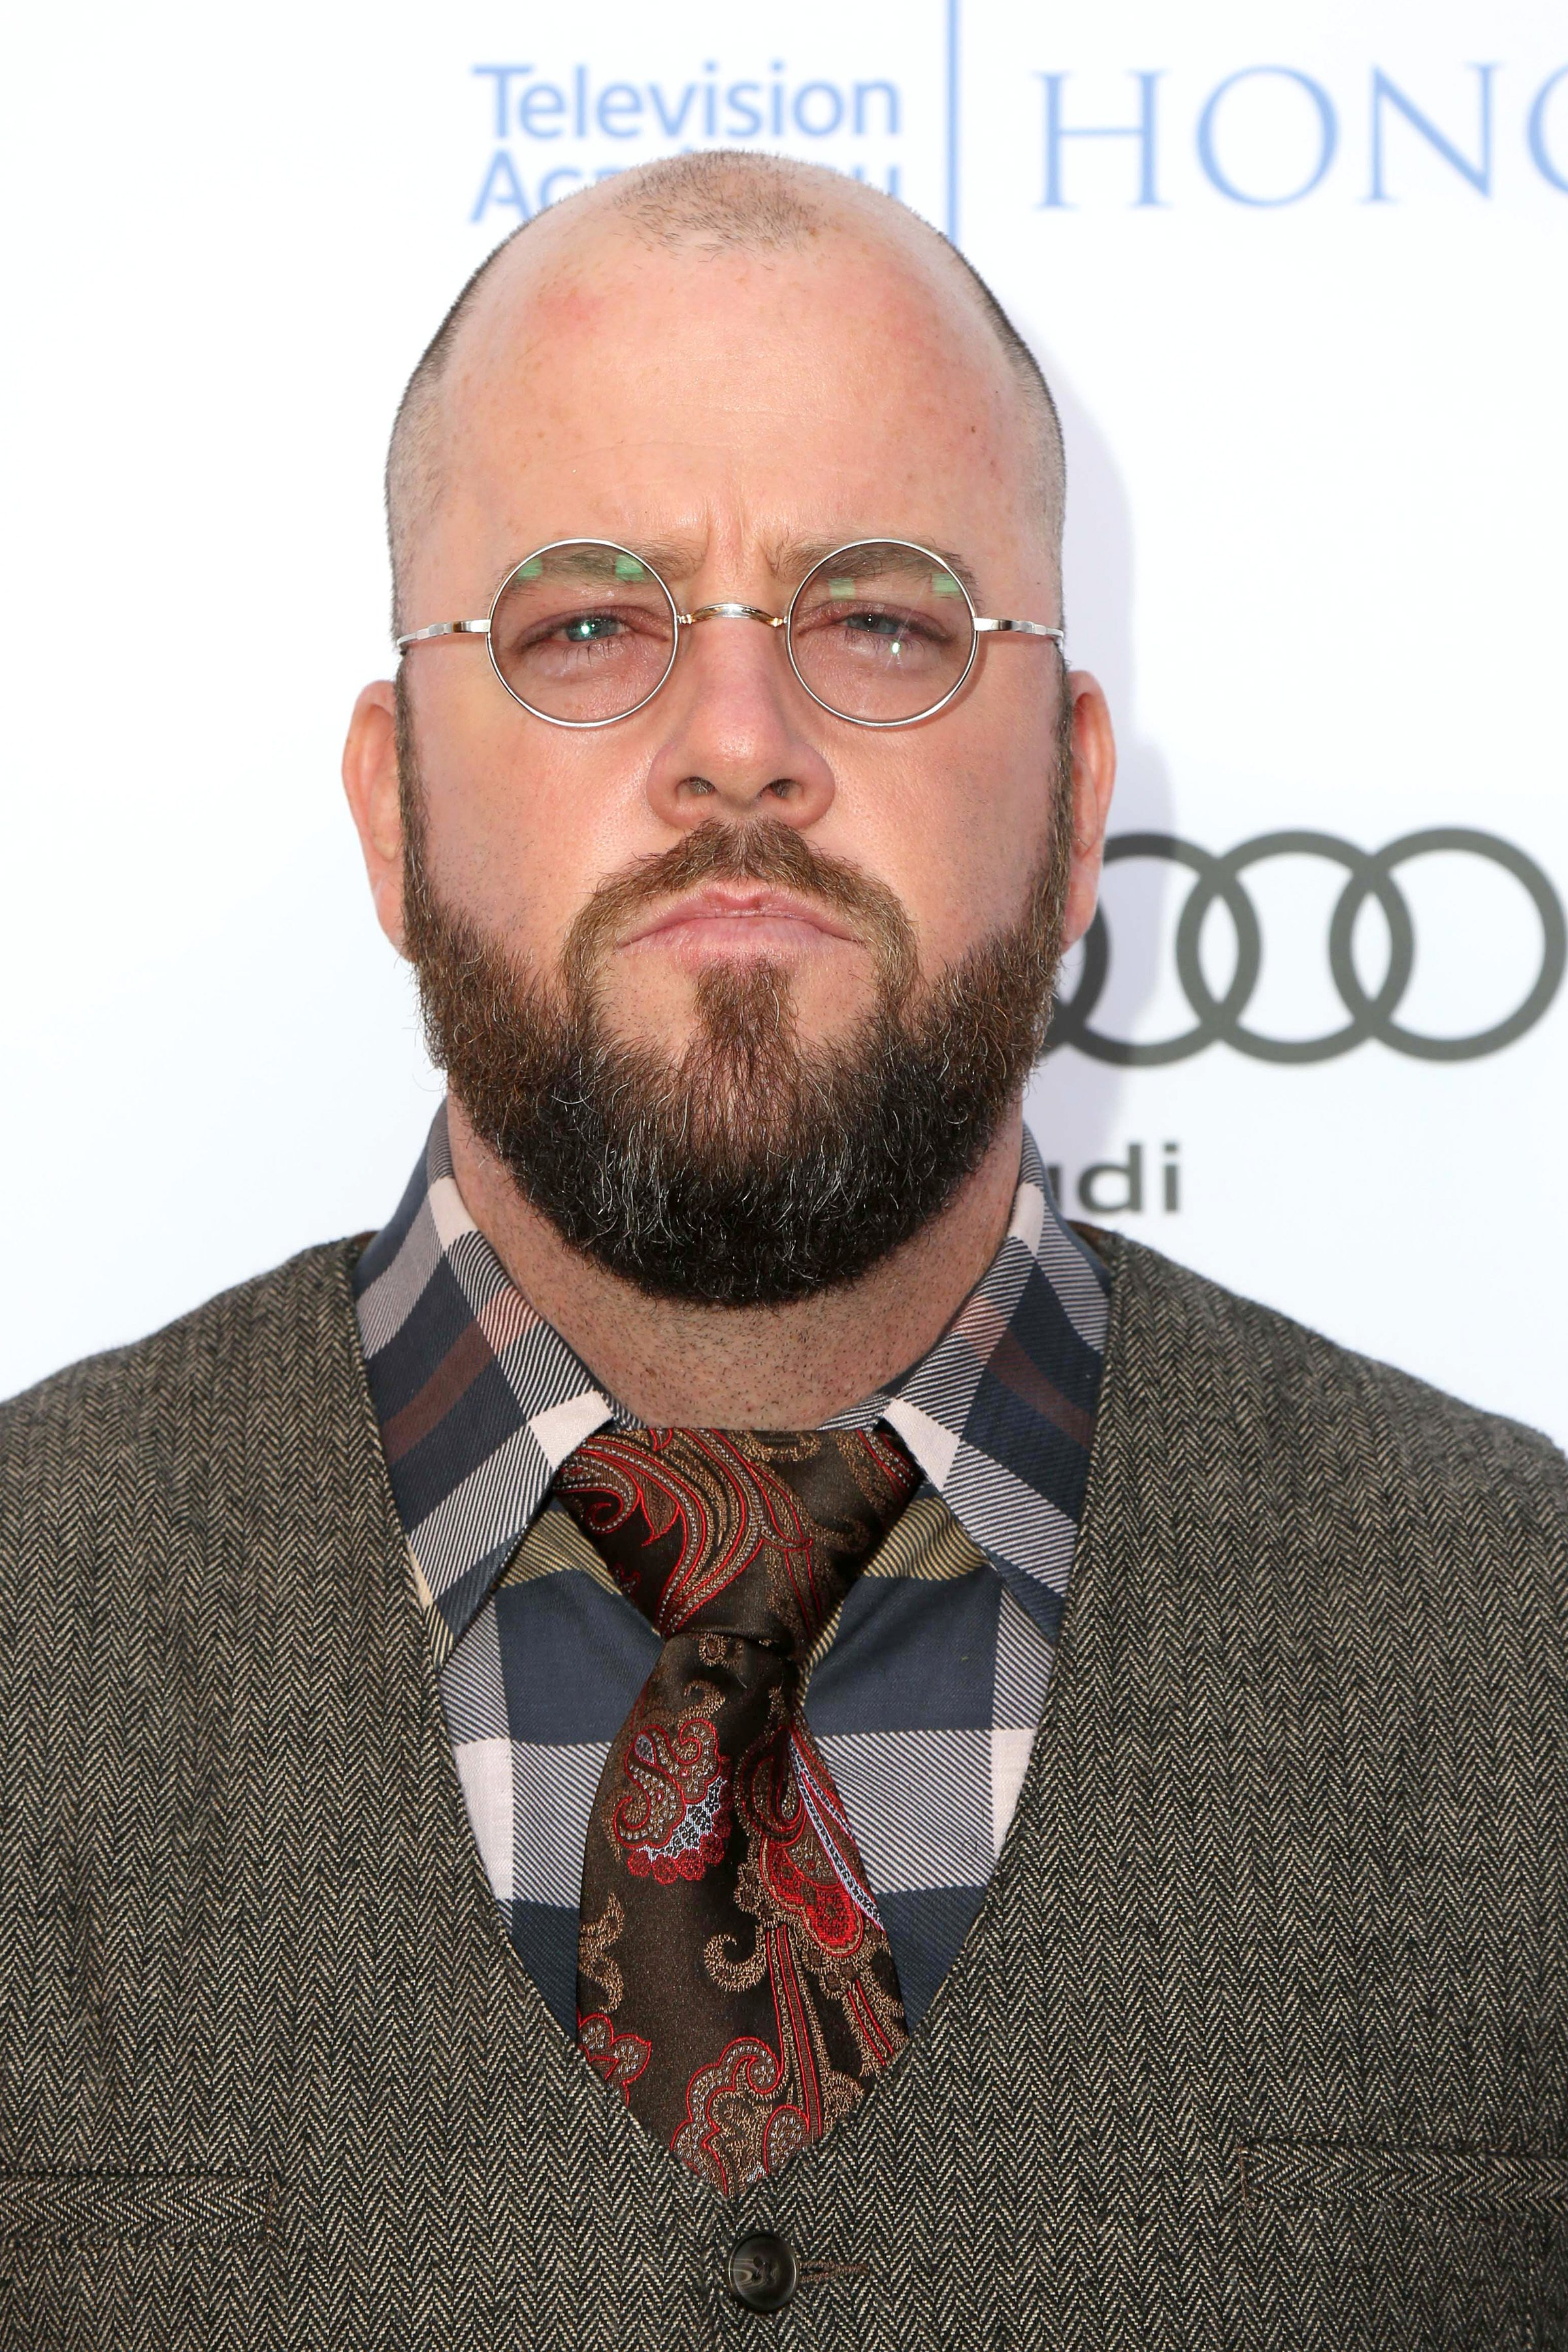 Chris Sullivan at the 10th Annual Television Academy Honors at the Montage Hotel on June 8, 2017 in Beverly Hills, California | Photo: Shutterstock